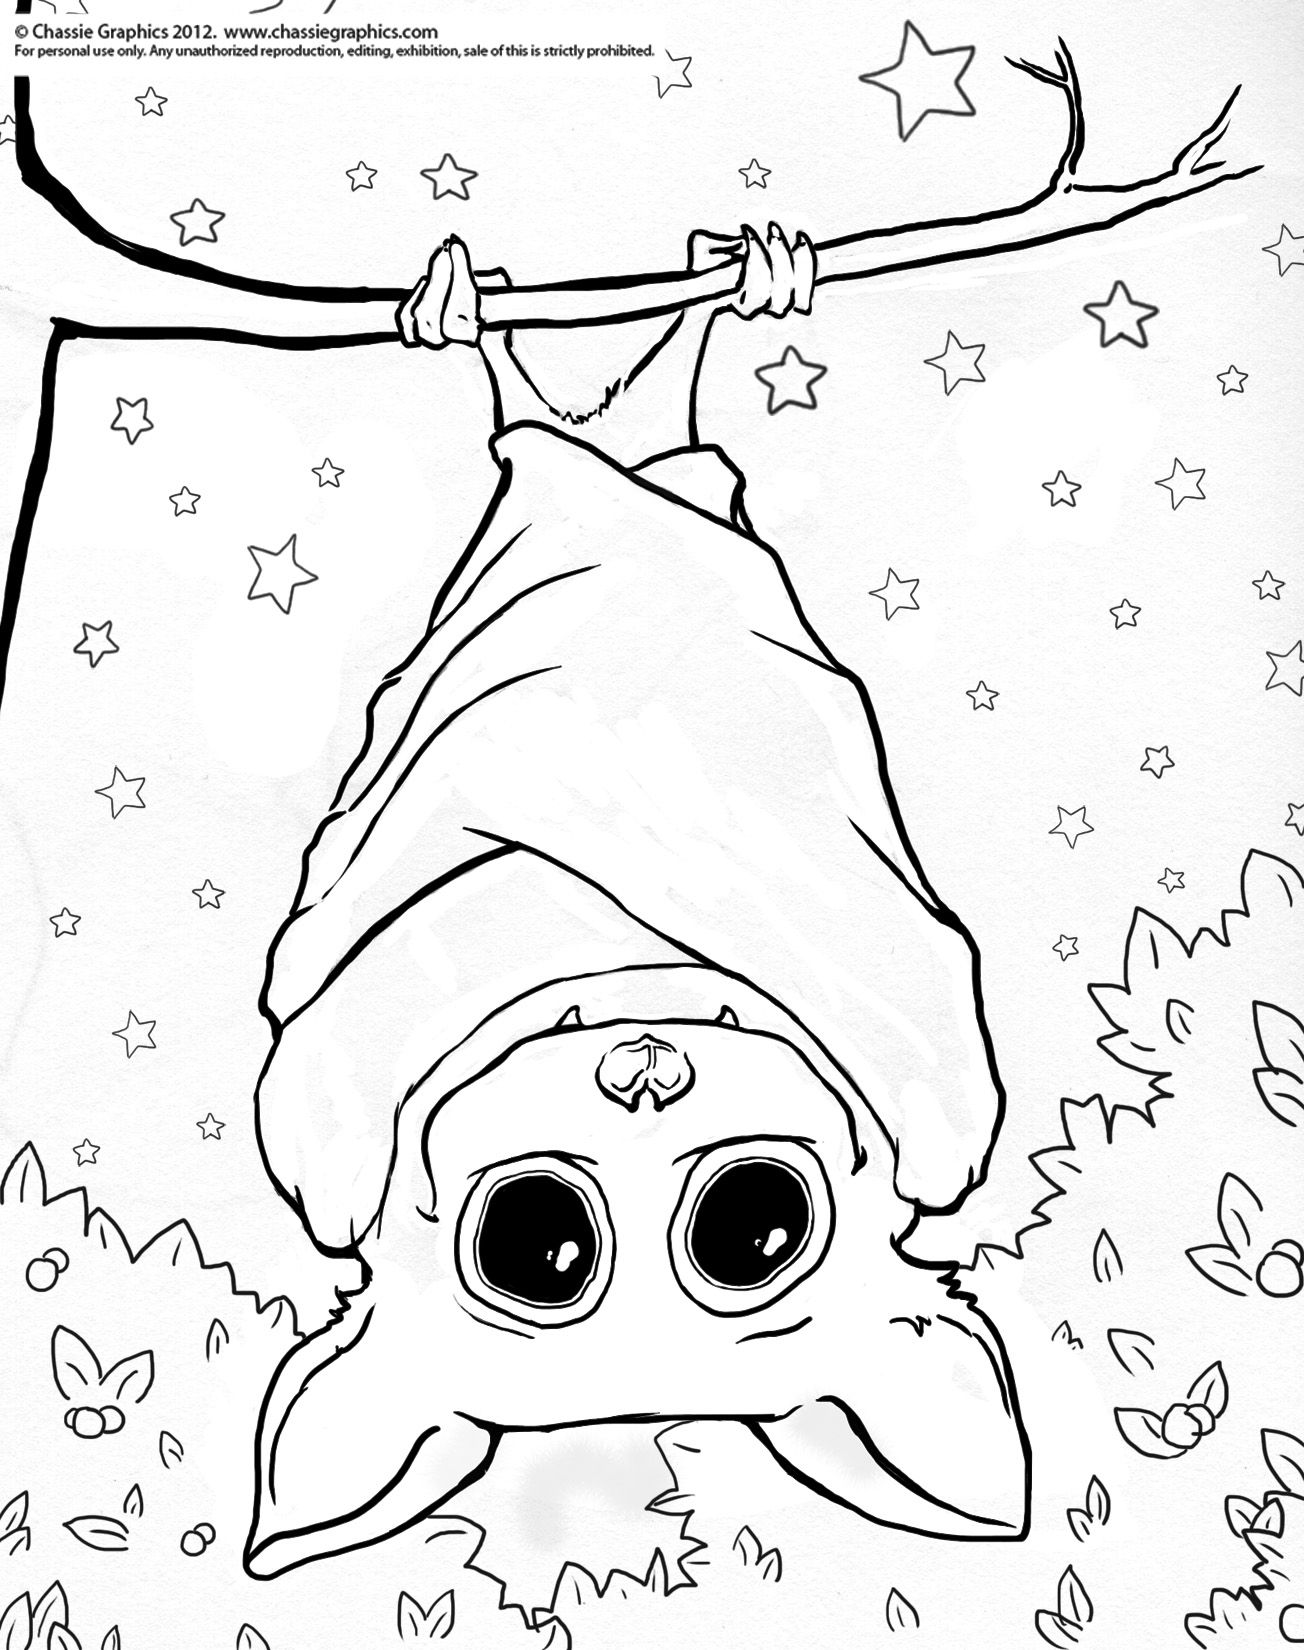 Adult Cute Bat Coloring Pages Printable Images top free bat coloring page 12 printable 1000 images about color pages to print off on pinterest bats and owl city gallery images